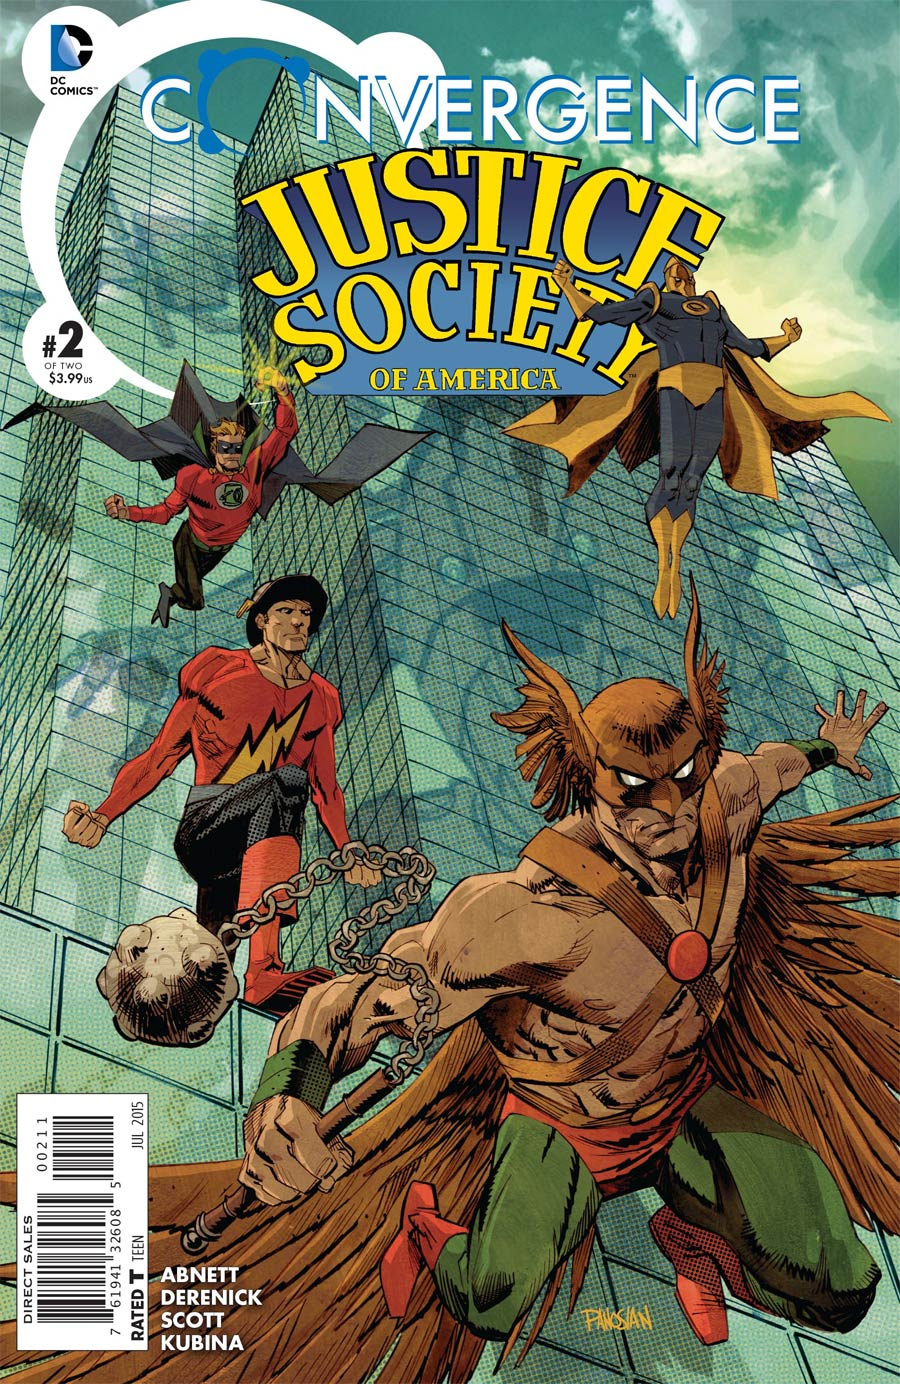 Convergence Justice Society Of America #2 Cover A Regular Dan Panosian Cover